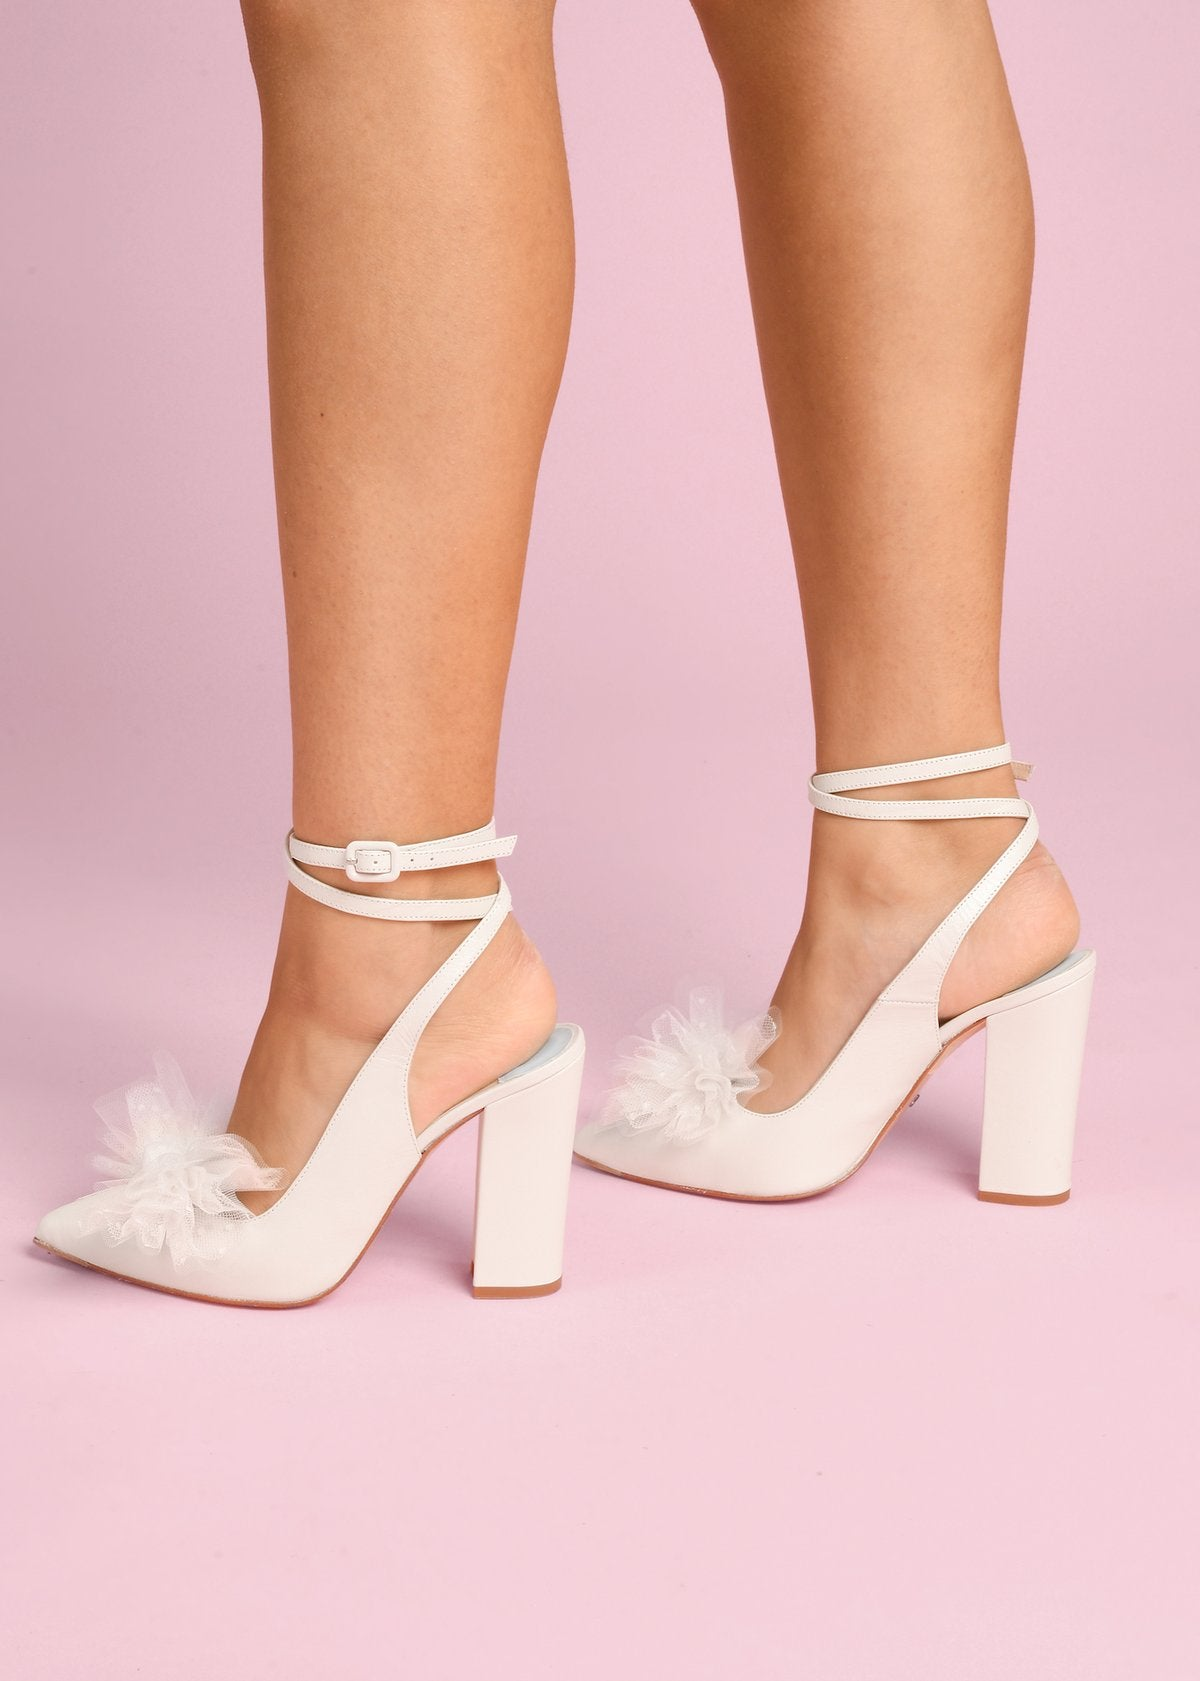 Joni - Pearl Tulle Bow by Charlotte Mills Wedding Shoes